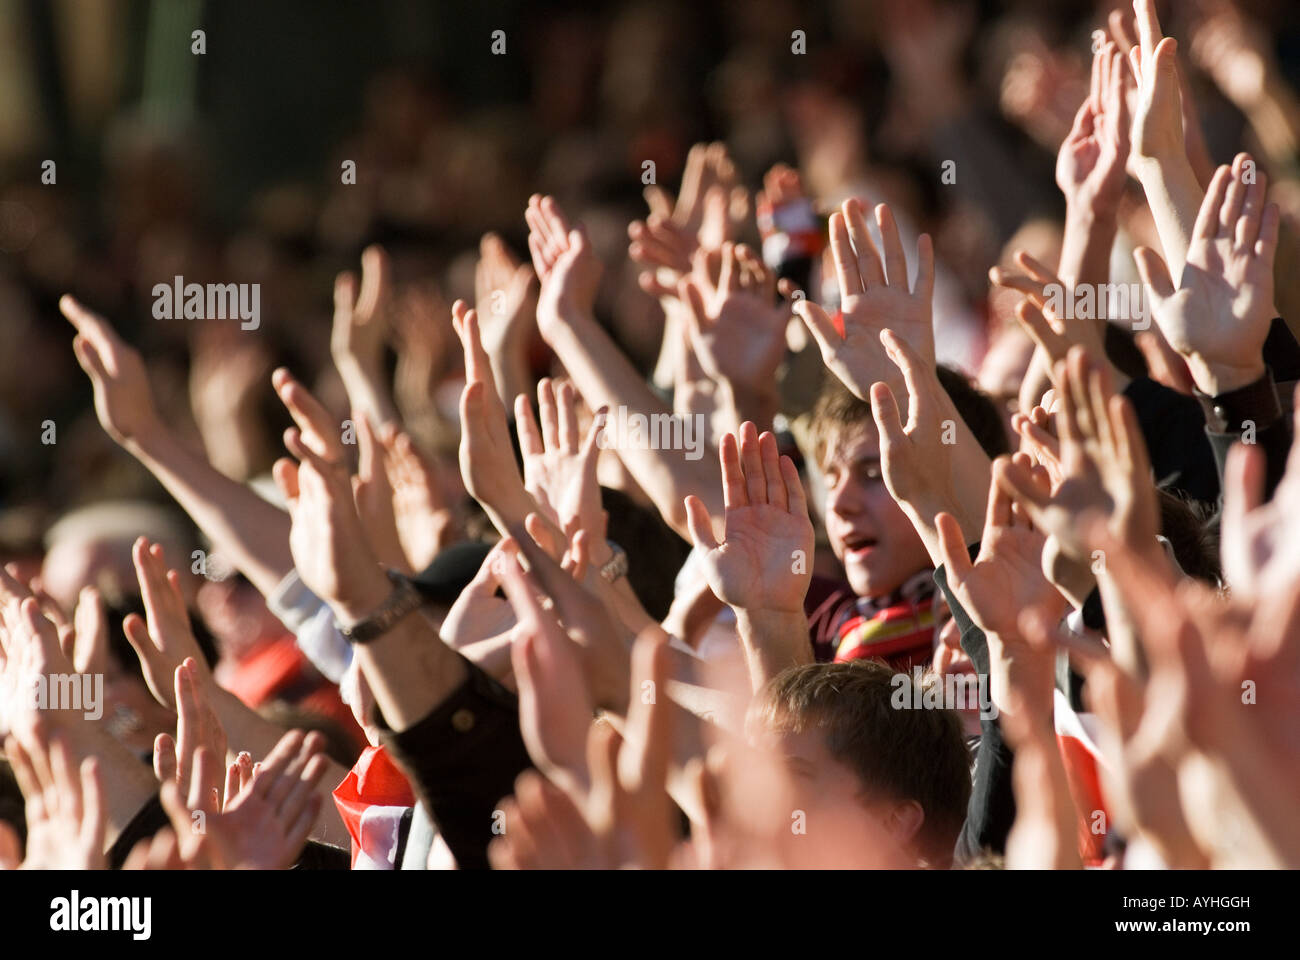 football fans wave their hands - Stock Image